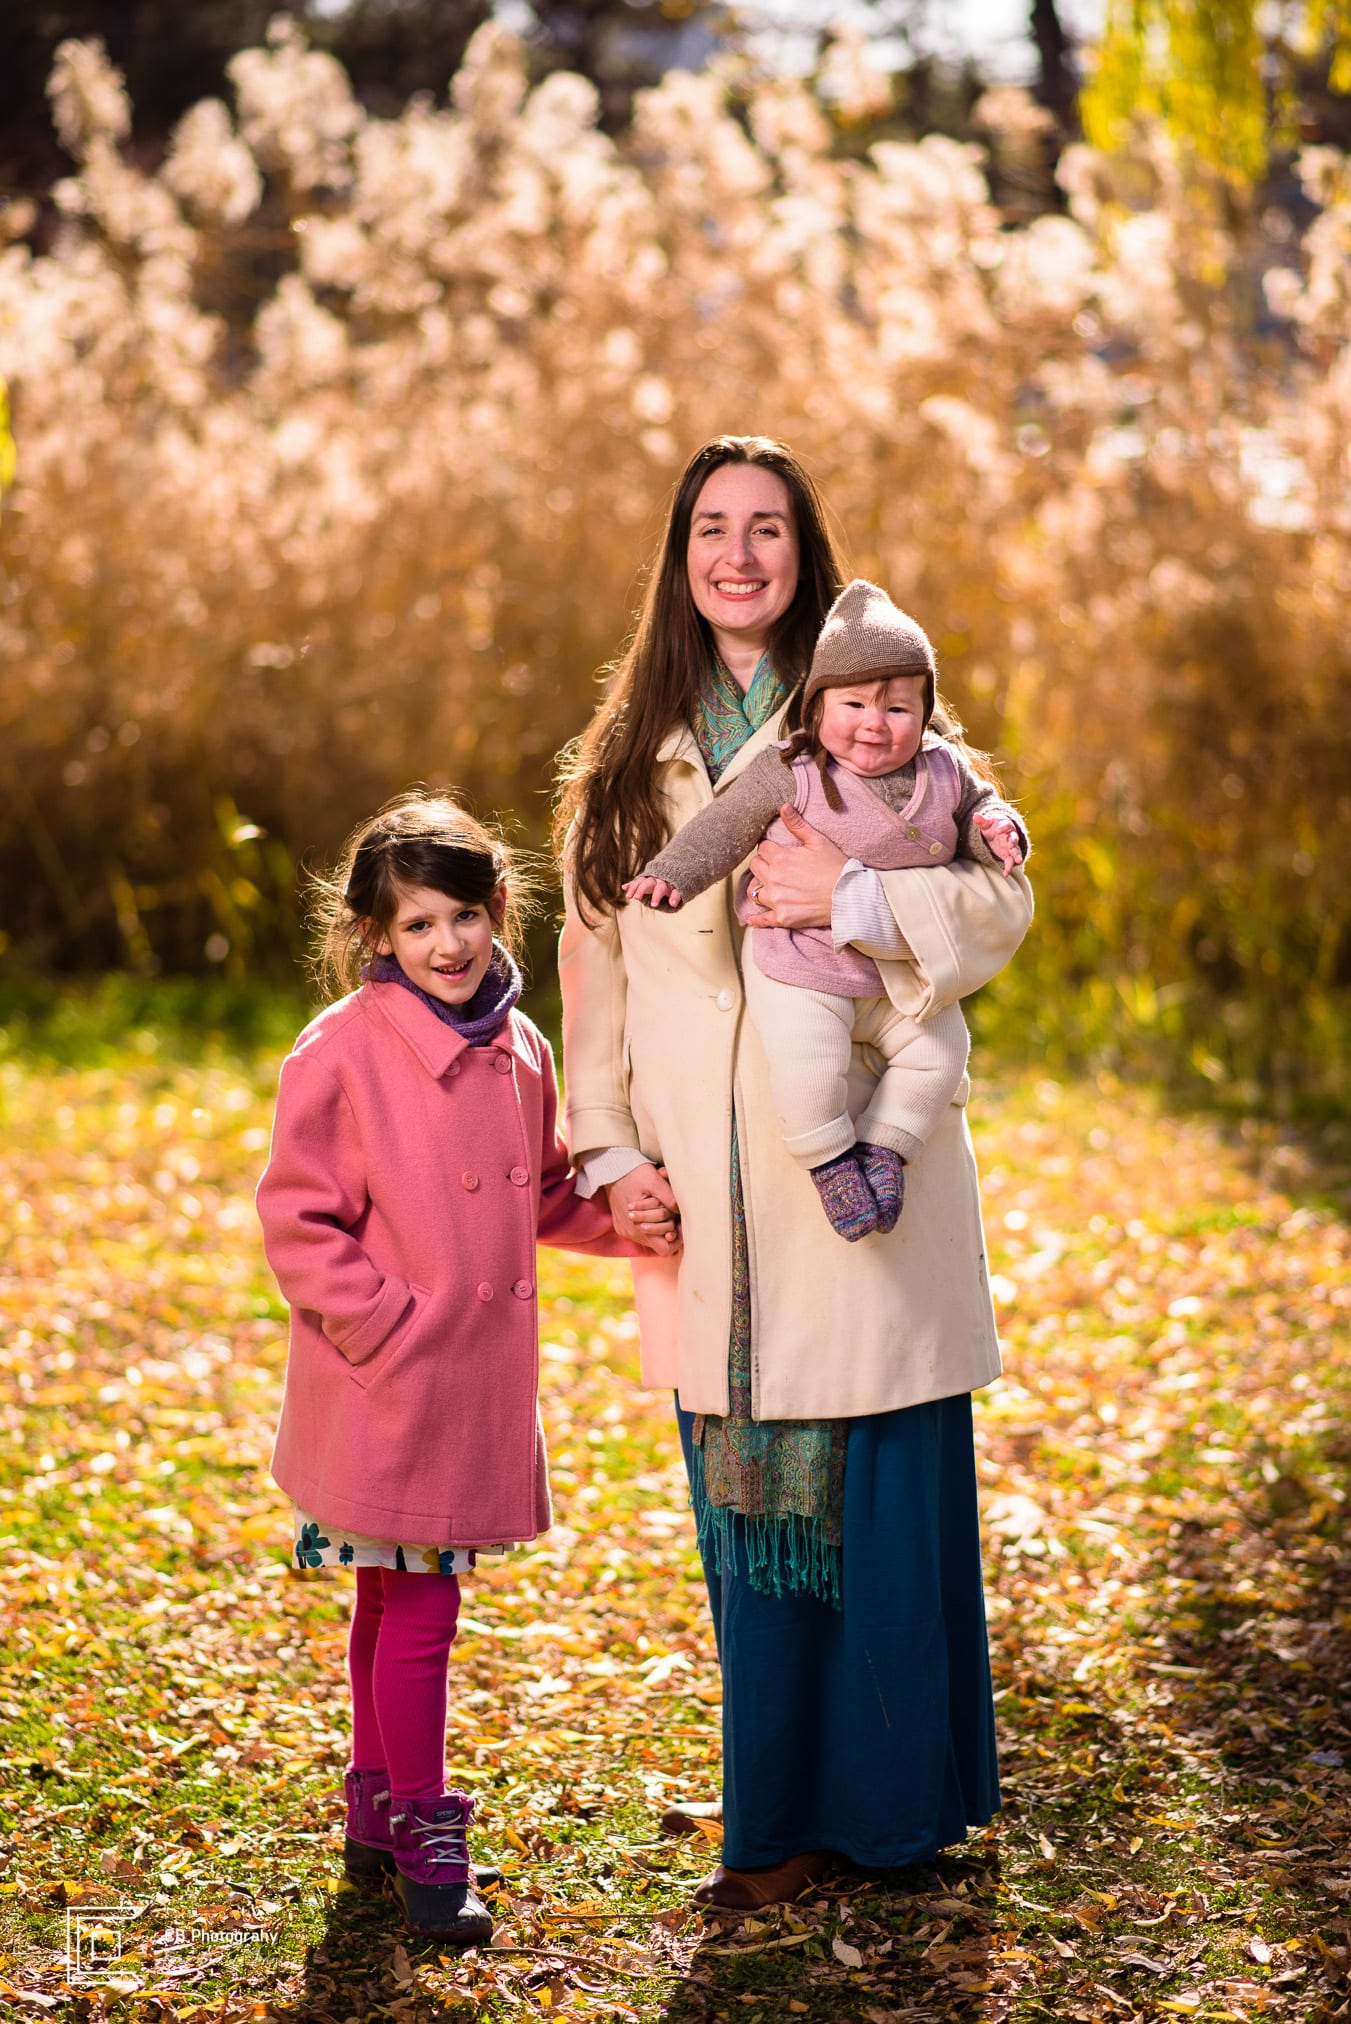 Family photography in autumn by the Tokyo photographer Cristian Bucur